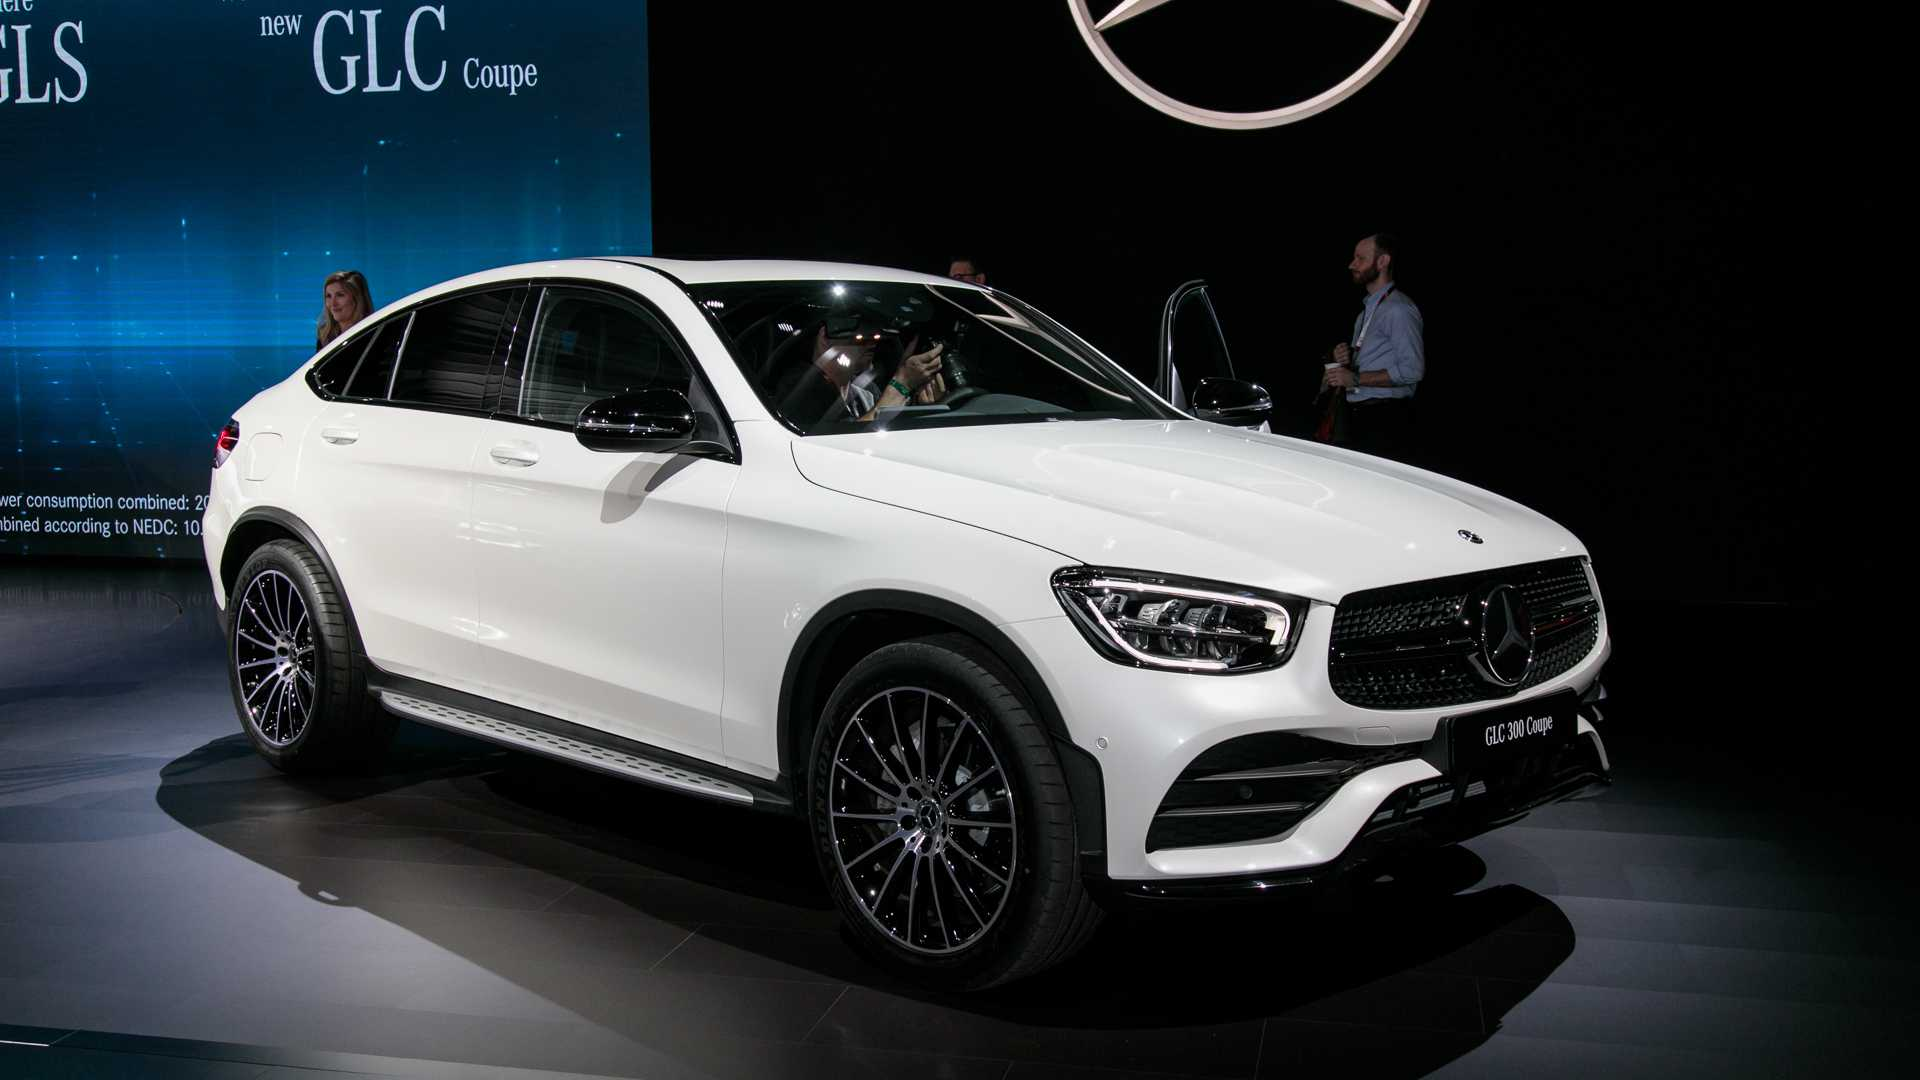 2020 Mercedes Benz Glc Coupe Gets Refreshed Face More Power